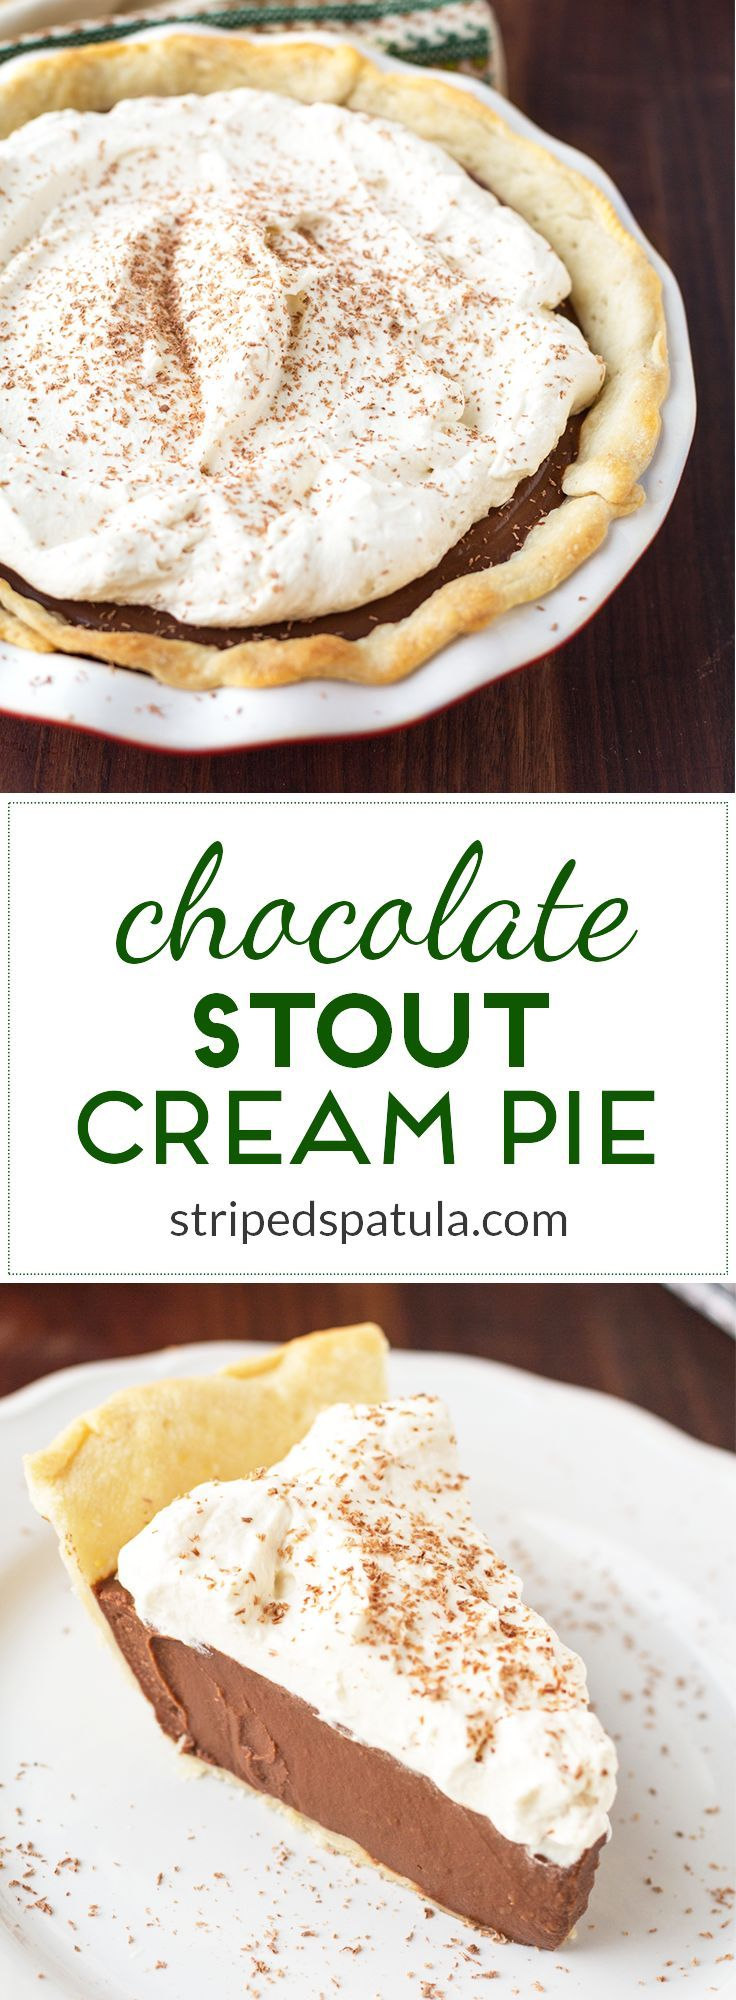 Chocolate Cream Pie gets a festive and grownup makeover for St. Patrick's Day! Topped with Irish Cream Whipped Cream for a decadent treat!